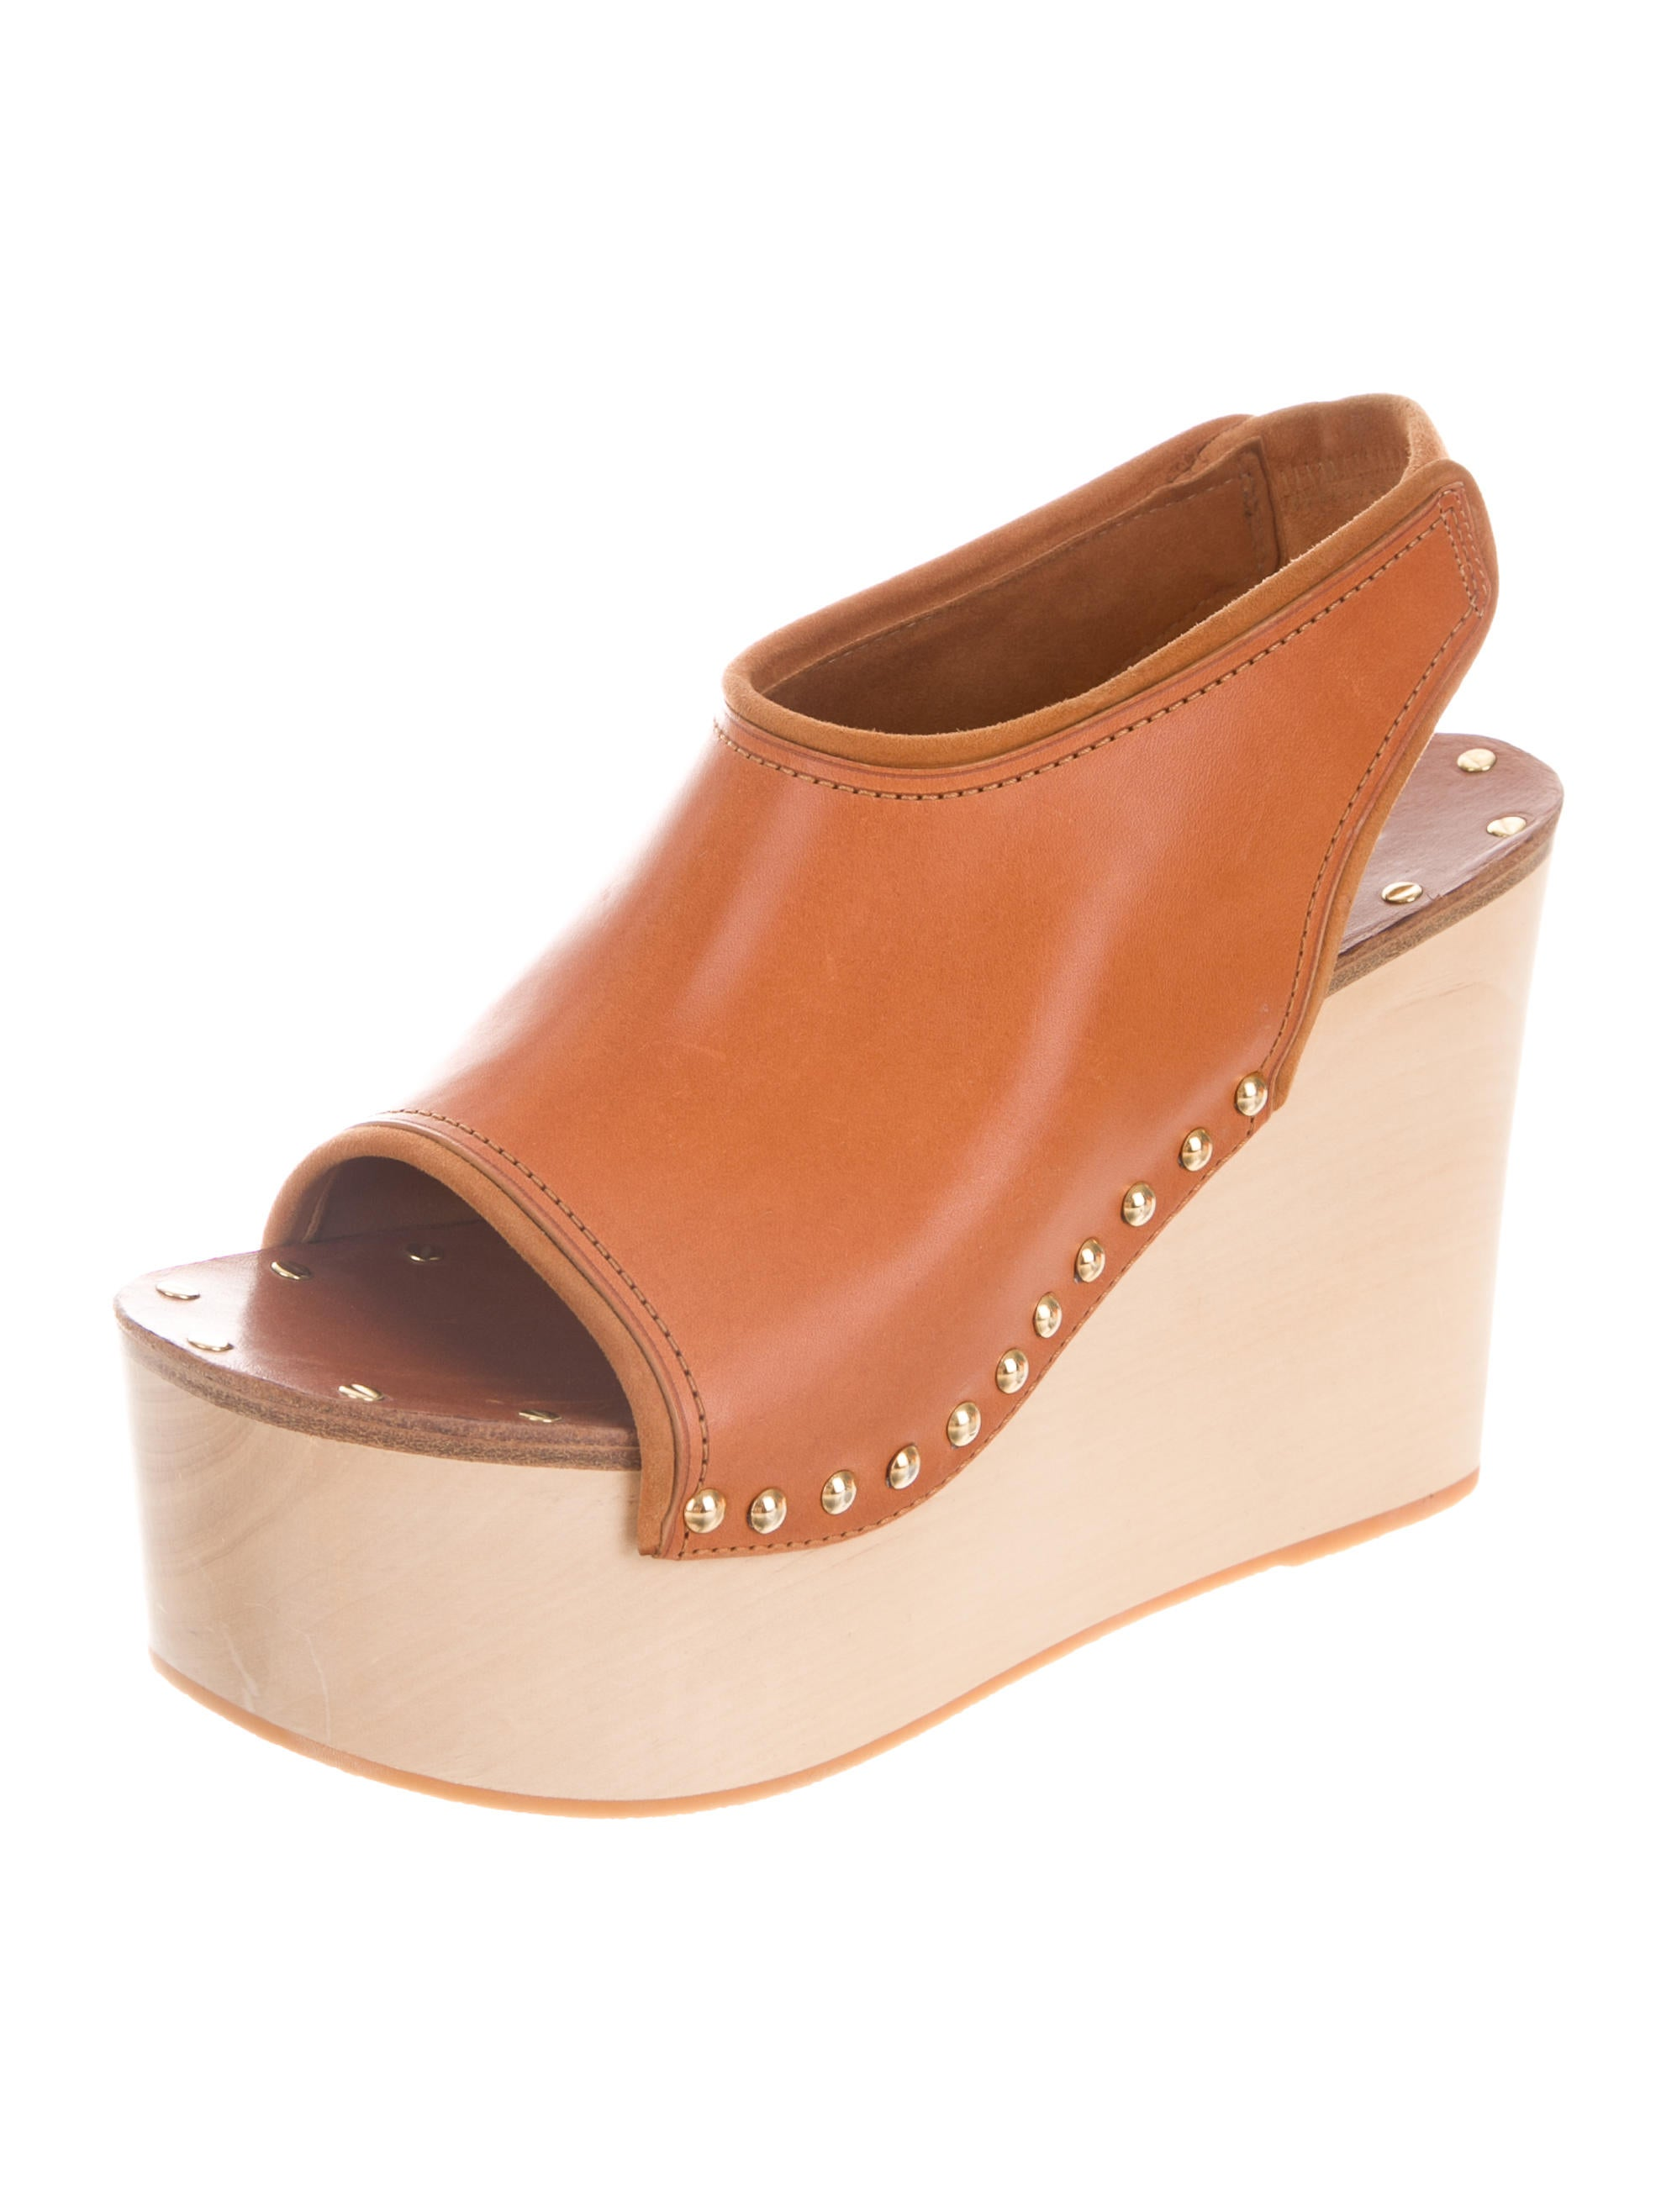 latest online discount buy Céline Leather Stud-Embellished Wedges reliable cheap price great deals cheap online cheap sale big discount LAQiwWM93